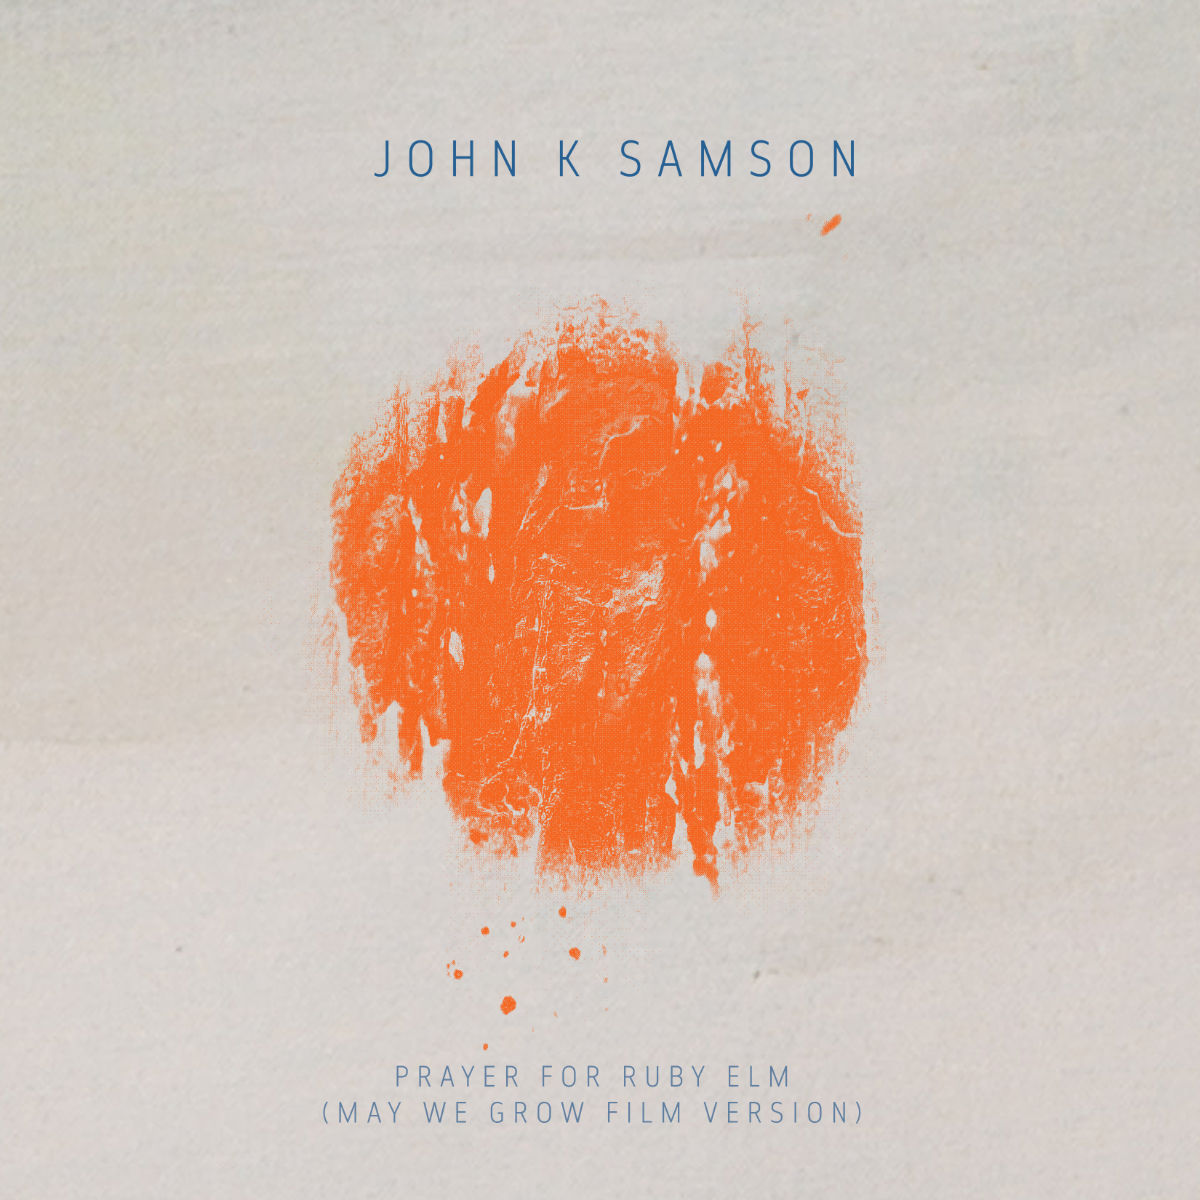 Prayer for Ruby Elm, John K Samson